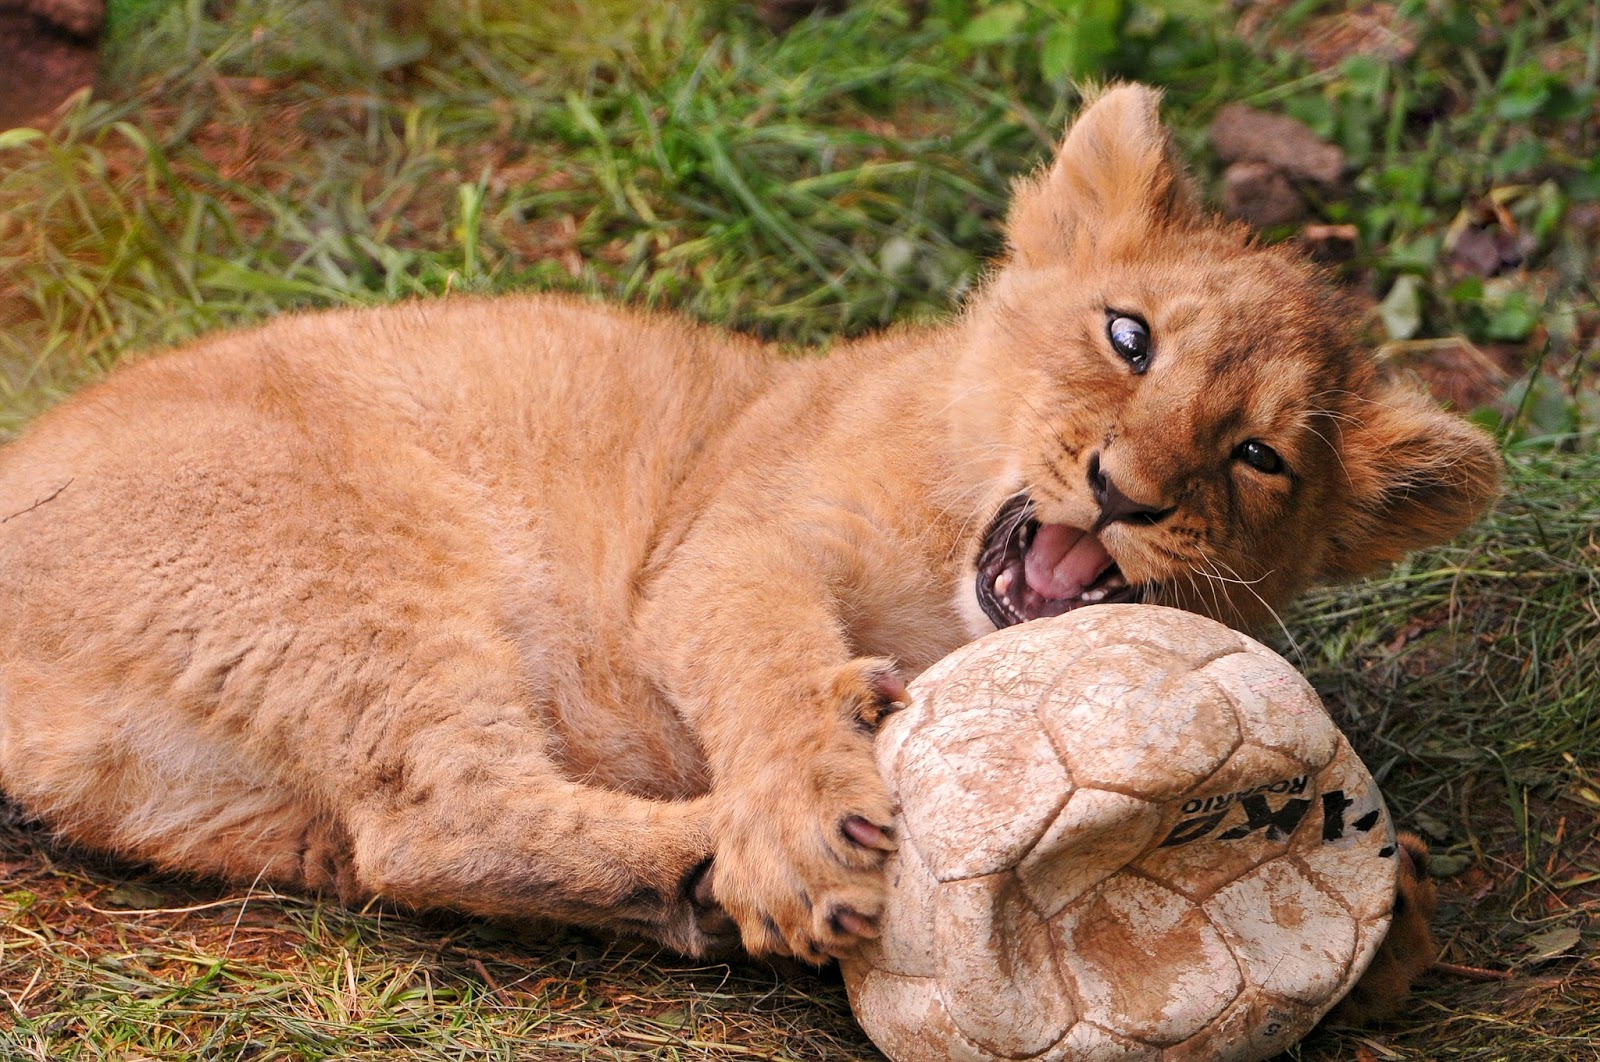 «The ball is also great fun!» by Tambako the Jaguar from flickr (CC-ND)